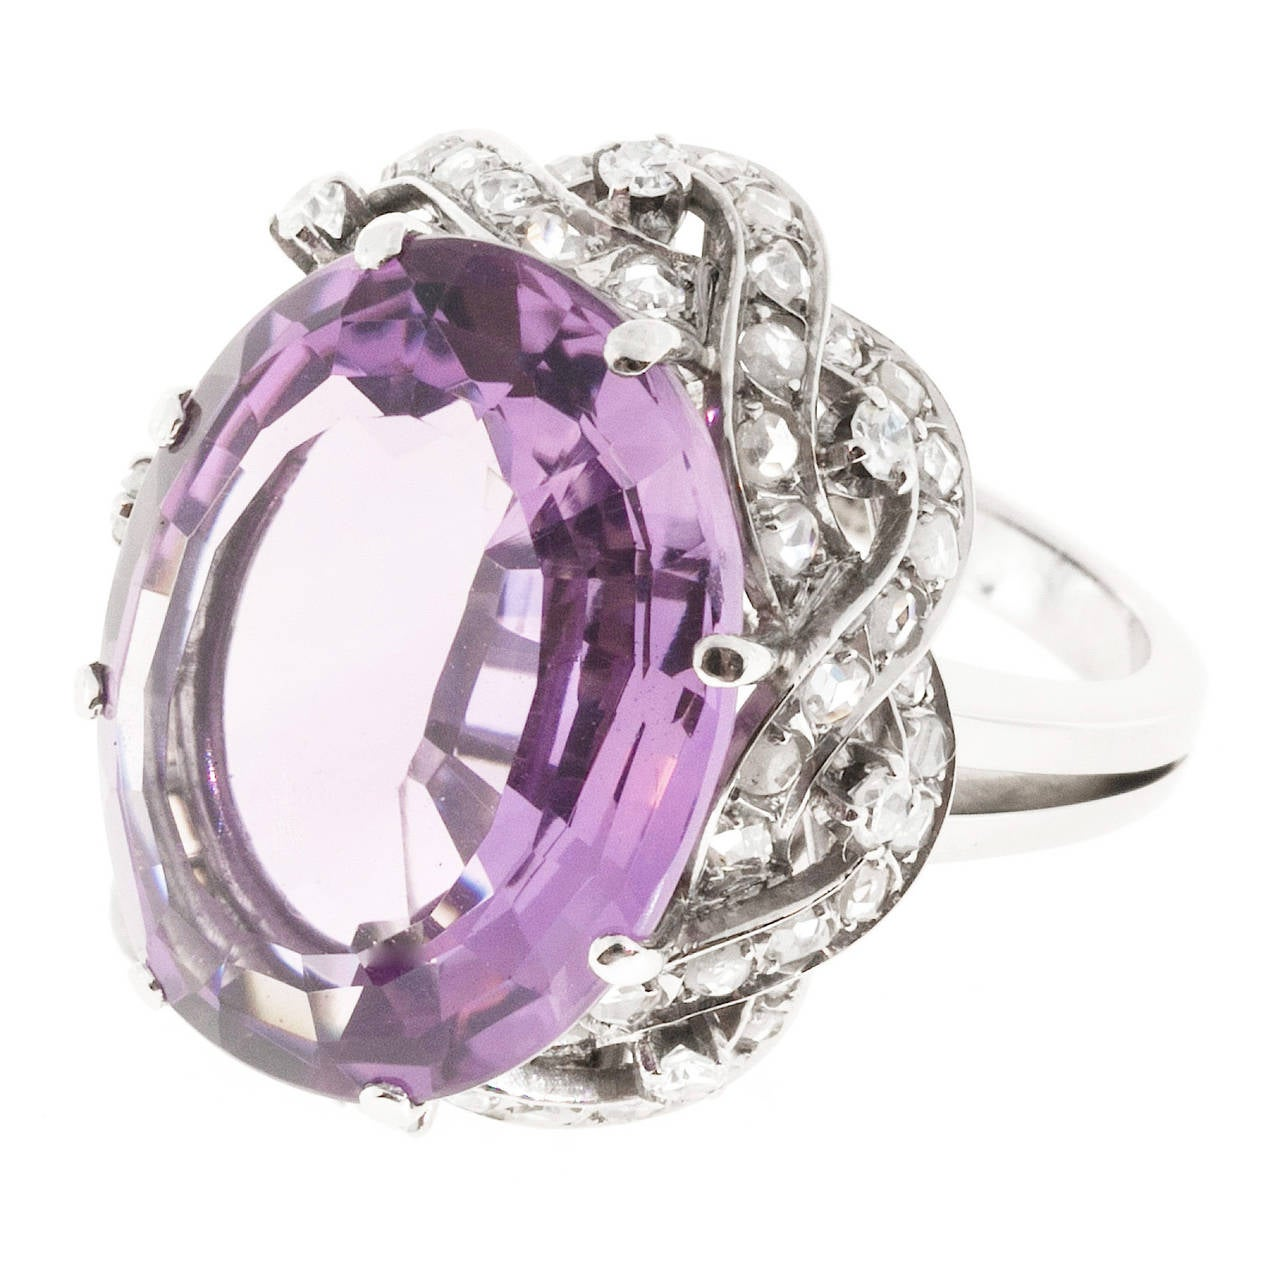 Natural Amethyst Diamond Gold Cocktail Ring For Sale 1